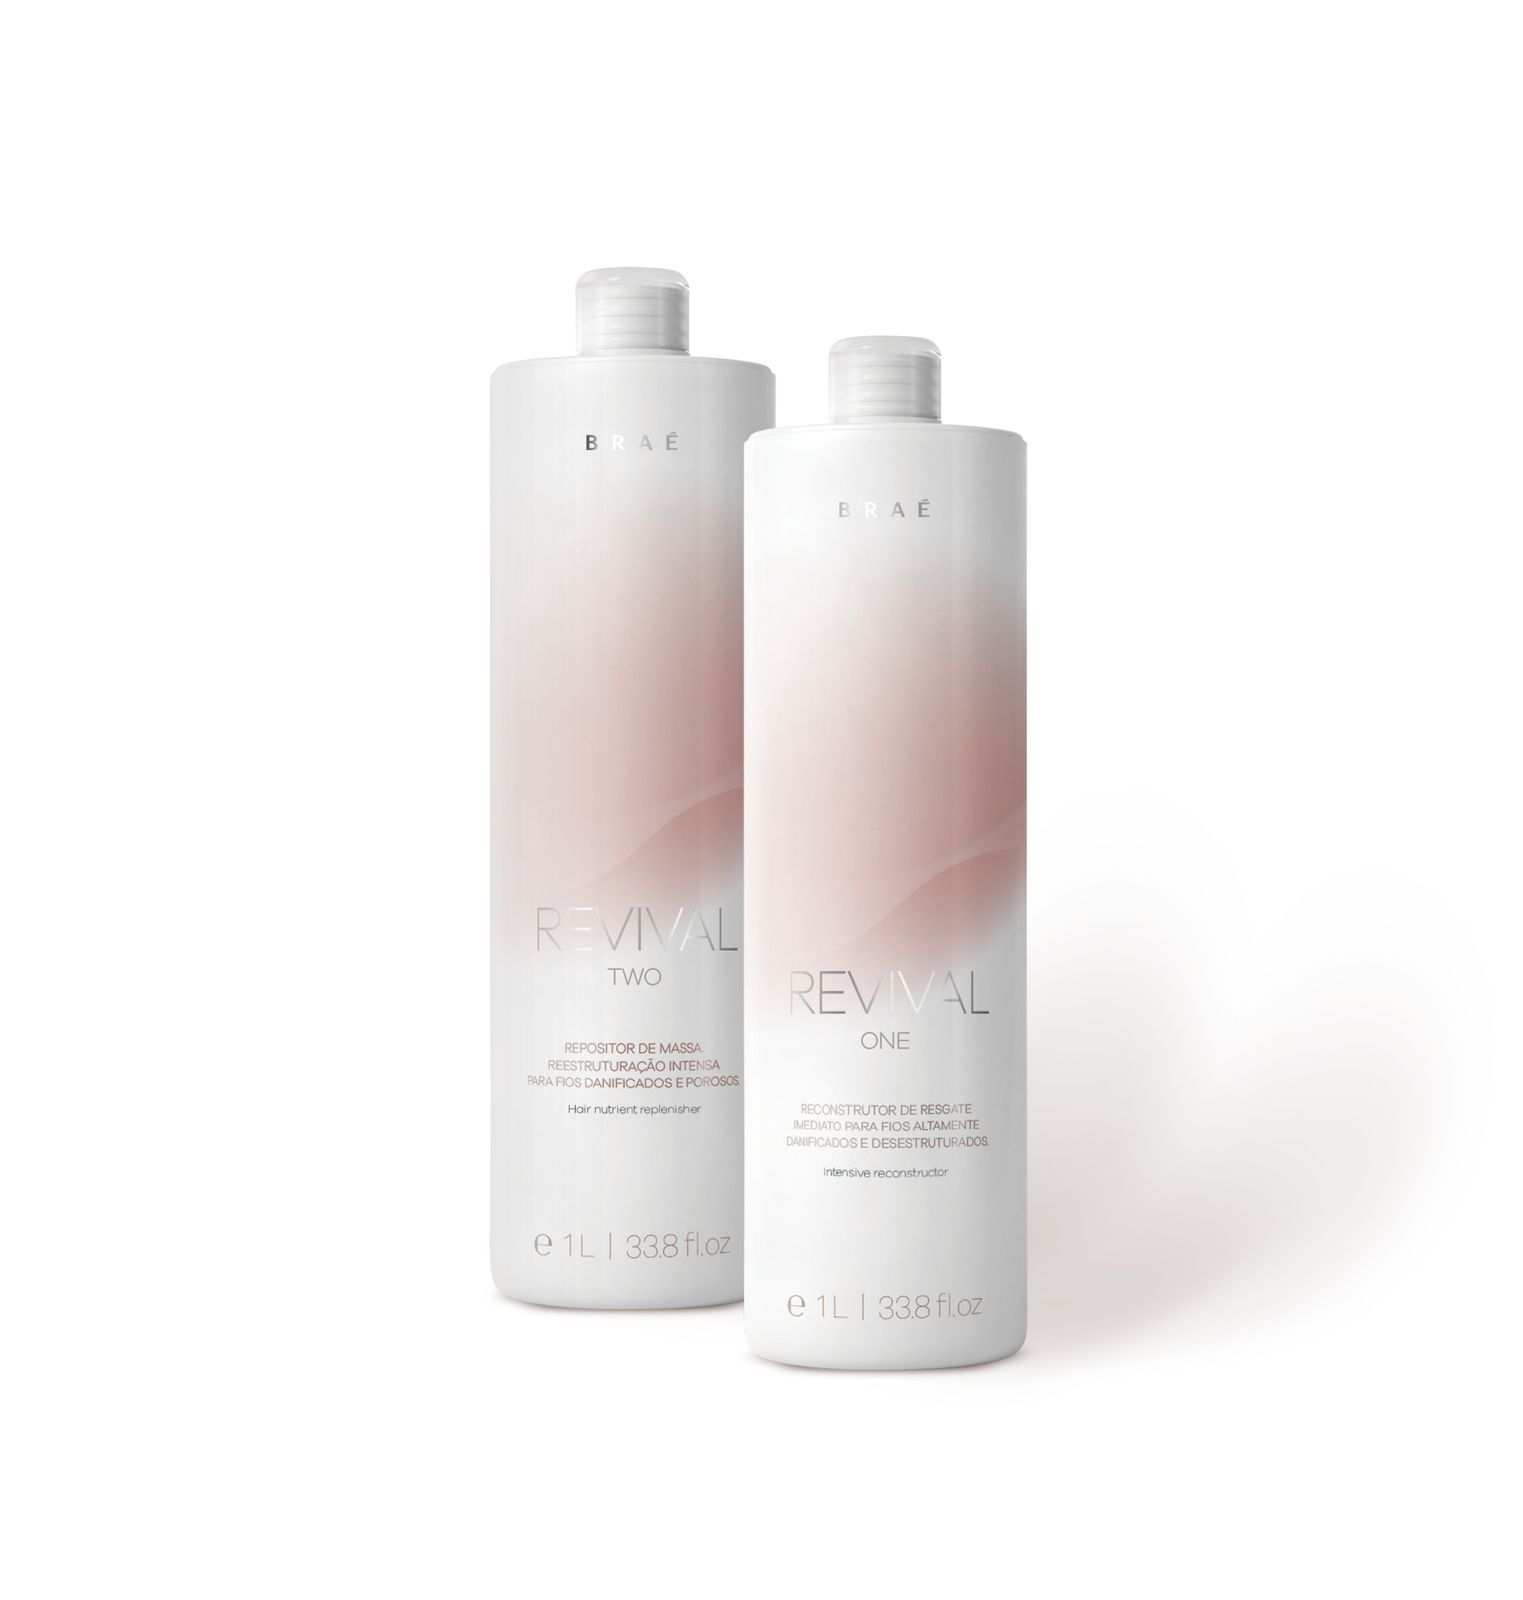 BRAÉ REVIVAL ONE E TWO KIT PROFISSIONAL (2X1L)